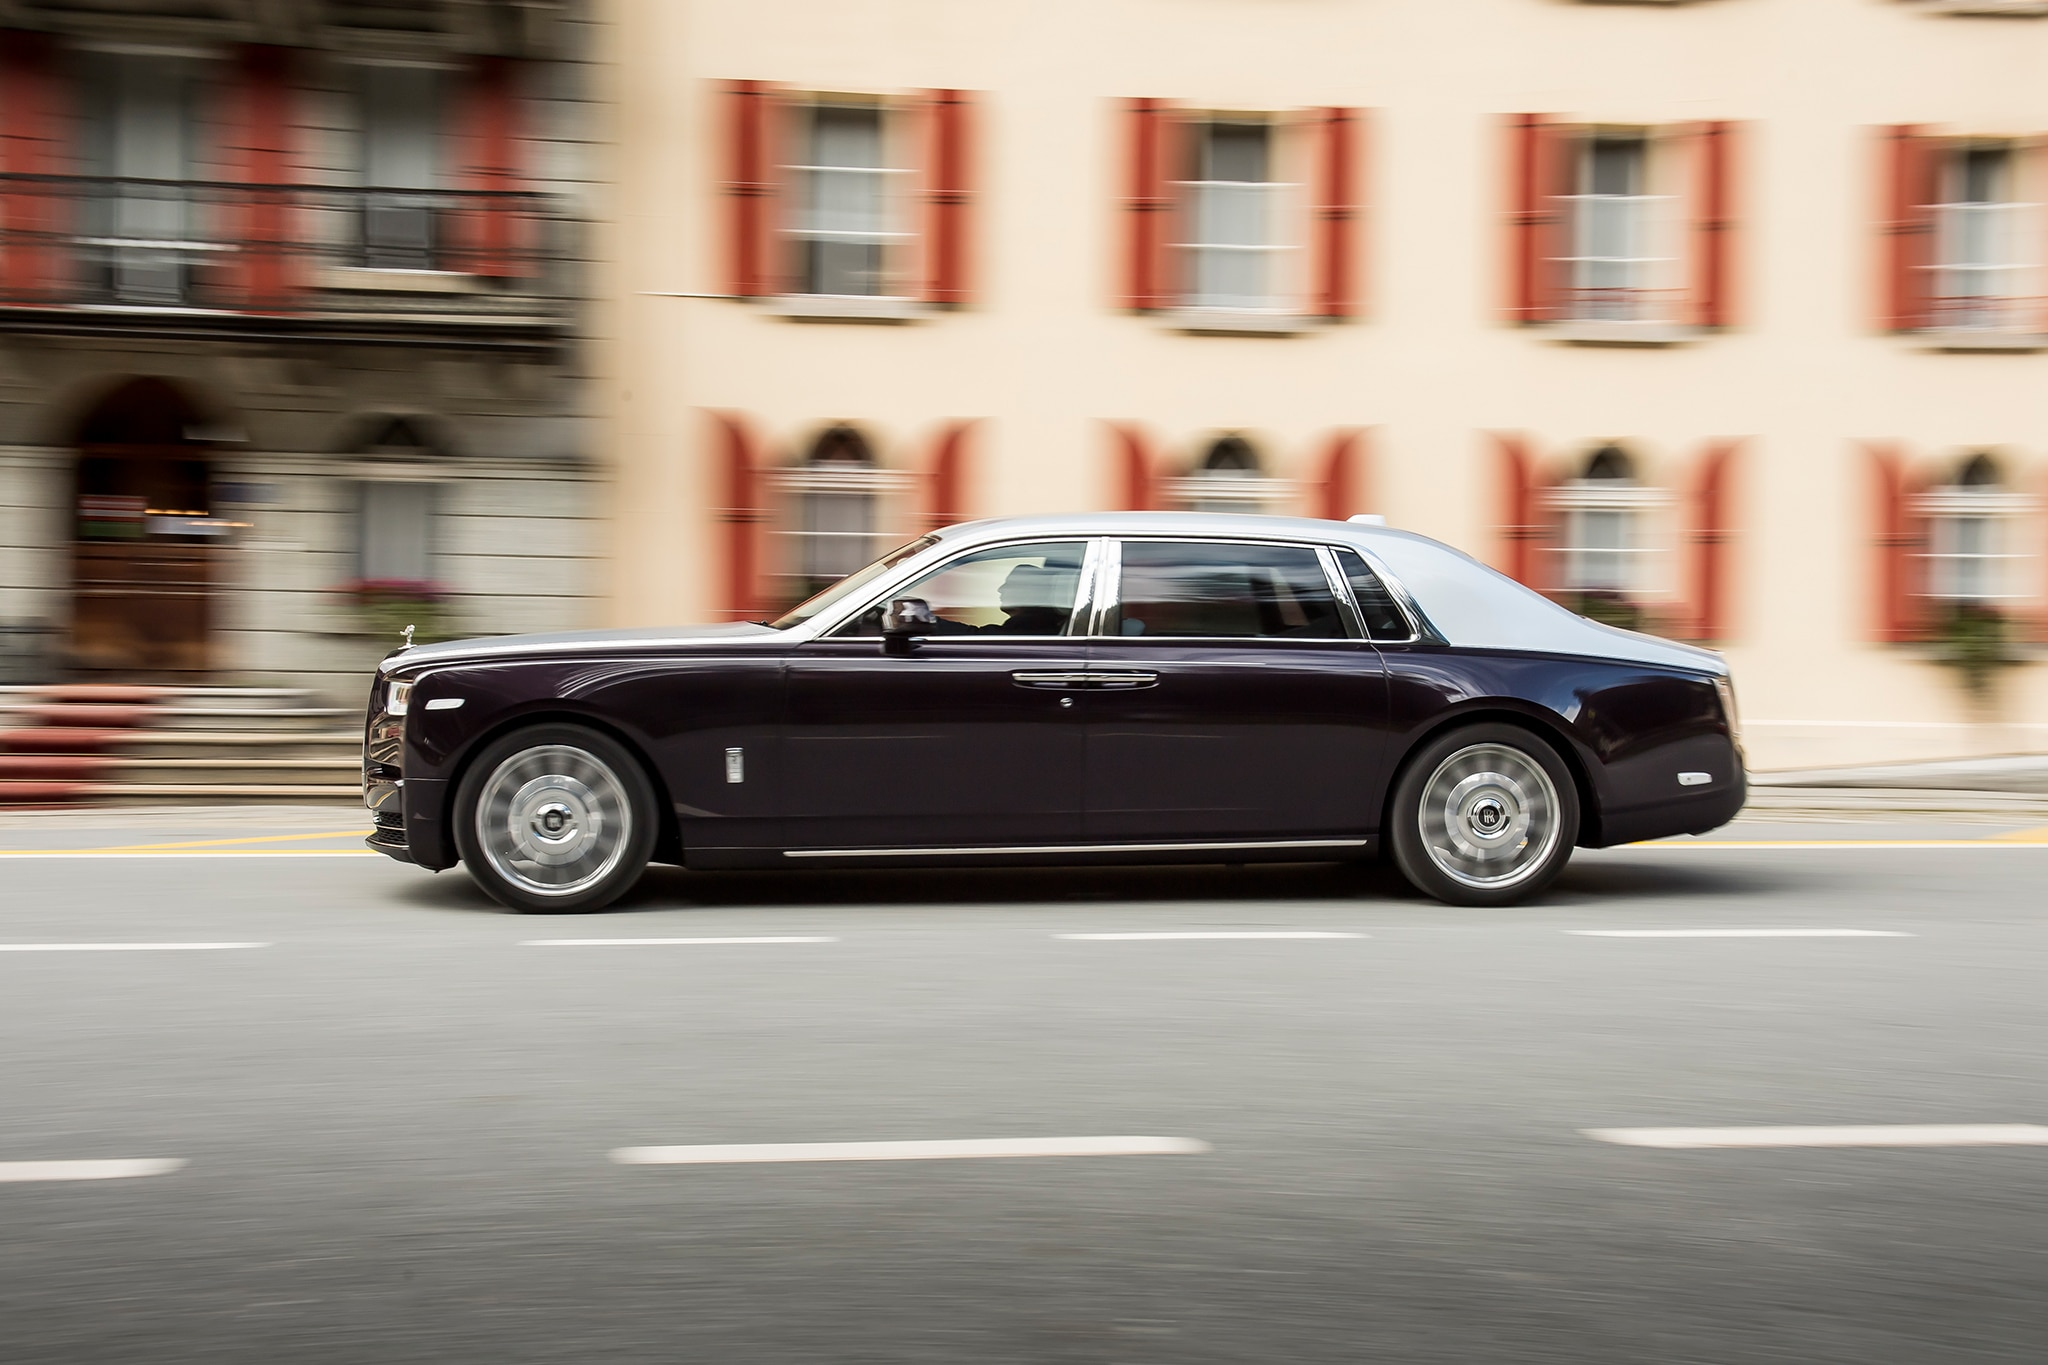 2018 Rolls Royce Phantom VIII Extended Wheelbase Side Profile In Motion 03